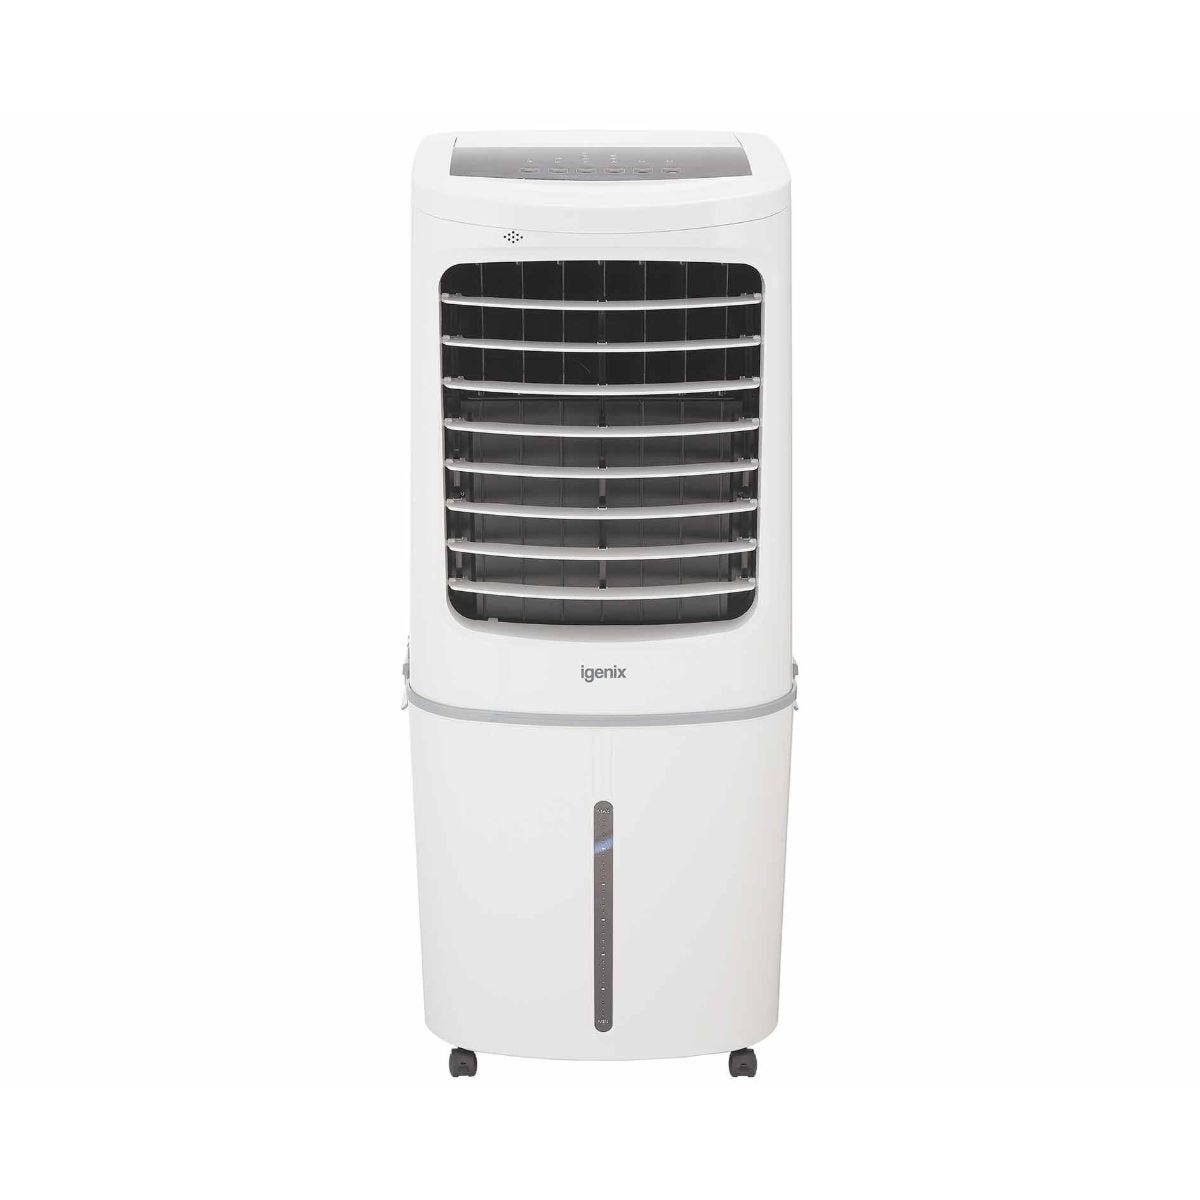 Igenix 50 Litre Air Cooler